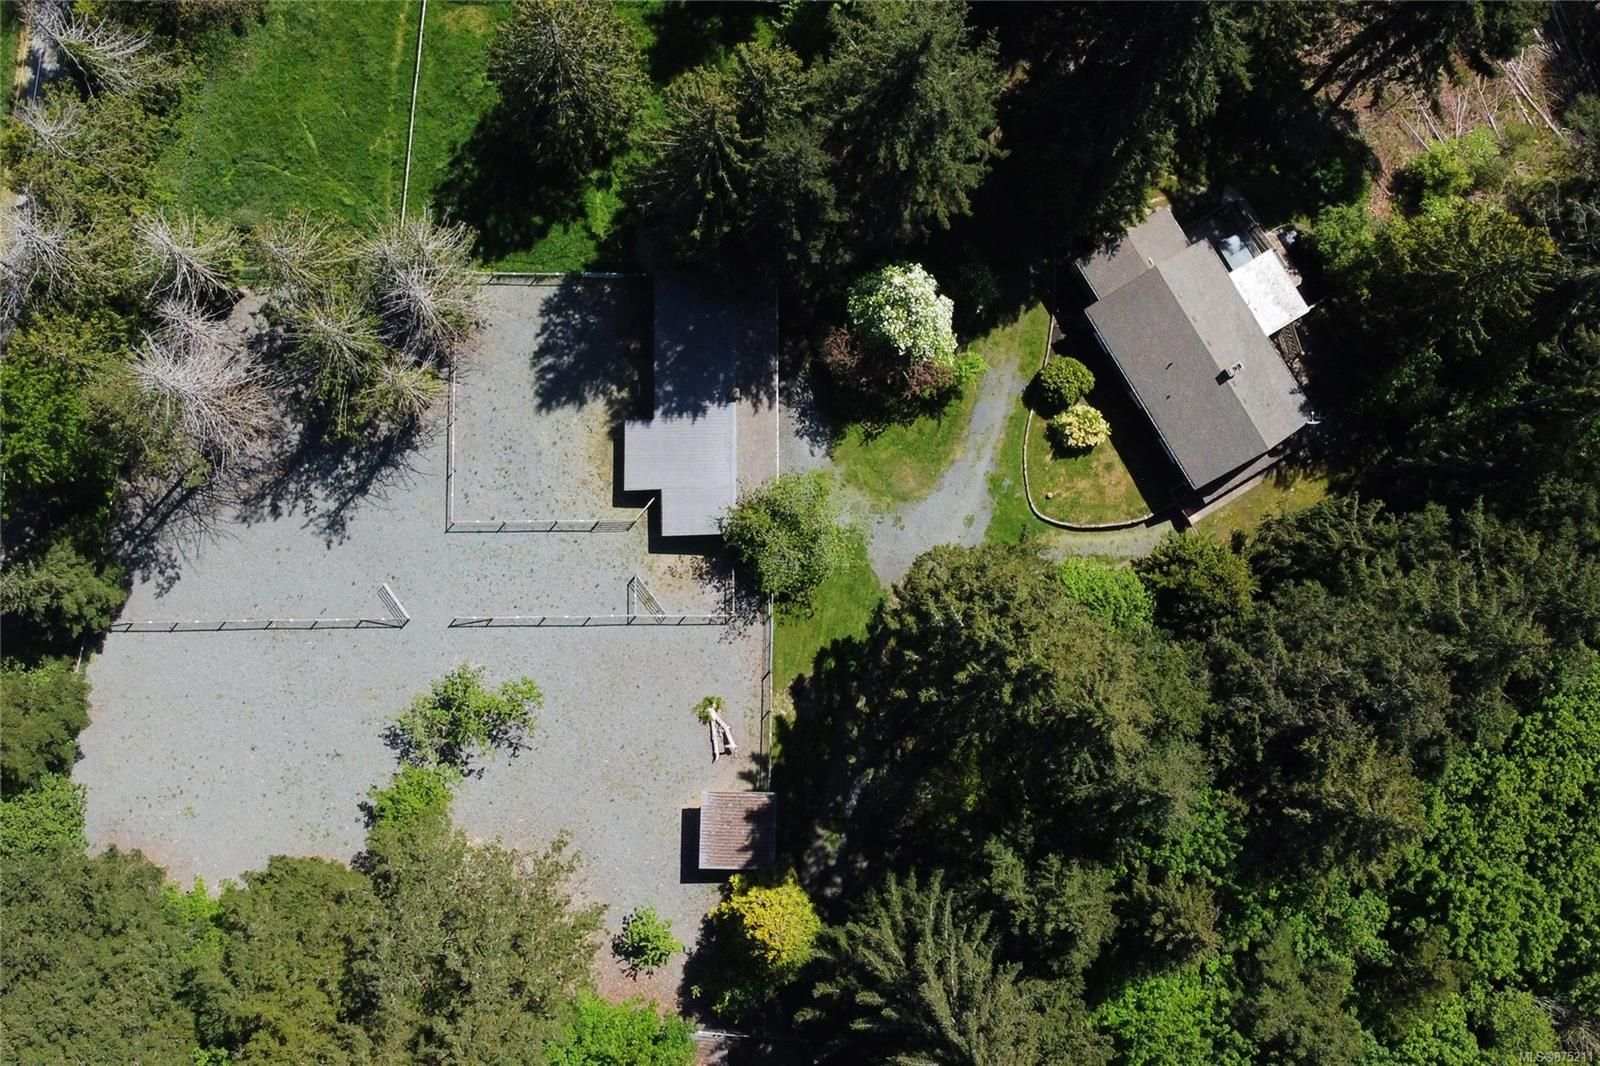 Main Photo: 3100 Doupe Rd in : Du Cowichan Station/Glenora House for sale (Duncan)  : MLS®# 875211